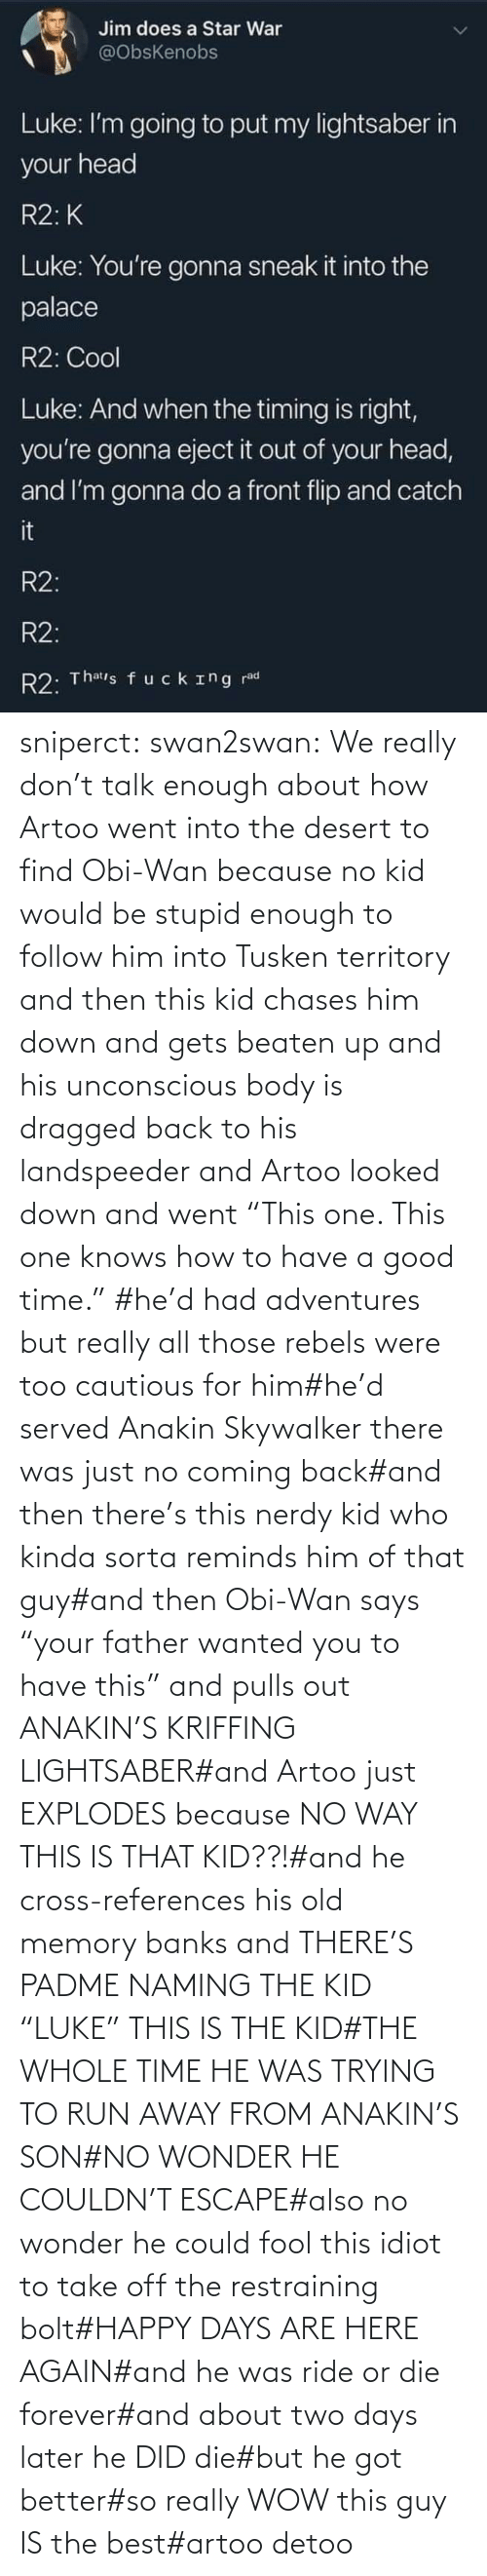 "Says: sniperct:  swan2swan: We really don't talk enough about how Artoo went into the desert to find Obi-Wan because no kid would be stupid enough to follow him into Tusken territory and then this kid chases him down and gets beaten up and his unconscious body is dragged back to his landspeeder and Artoo looked down and went ""This one. This one knows how to have a good time.""  #he'd had adventures but really all those rebels were too cautious for him#he'd served Anakin Skywalker there was just no coming back#and then there's this nerdy kid who kinda sorta reminds him of that guy#and then Obi-Wan says ""your father wanted you to have this"" and pulls out ANAKIN'S KRIFFING LIGHTSABER#and Artoo just EXPLODES because NO WAY THIS IS THAT KID??!#and he cross-references his old memory banks and THERE'S PADME NAMING THE KID ""LUKE"" THIS IS THE KID#THE WHOLE TIME HE WAS TRYING TO RUN AWAY FROM ANAKIN'S SON#NO WONDER HE COULDN'T ESCAPE#also no wonder he could fool this idiot to take off the restraining bolt#HAPPY DAYS ARE HERE AGAIN#and he was ride or die forever#and about two days later he DID die#but he got better#so really WOW this guy IS the best#artoo detoo"